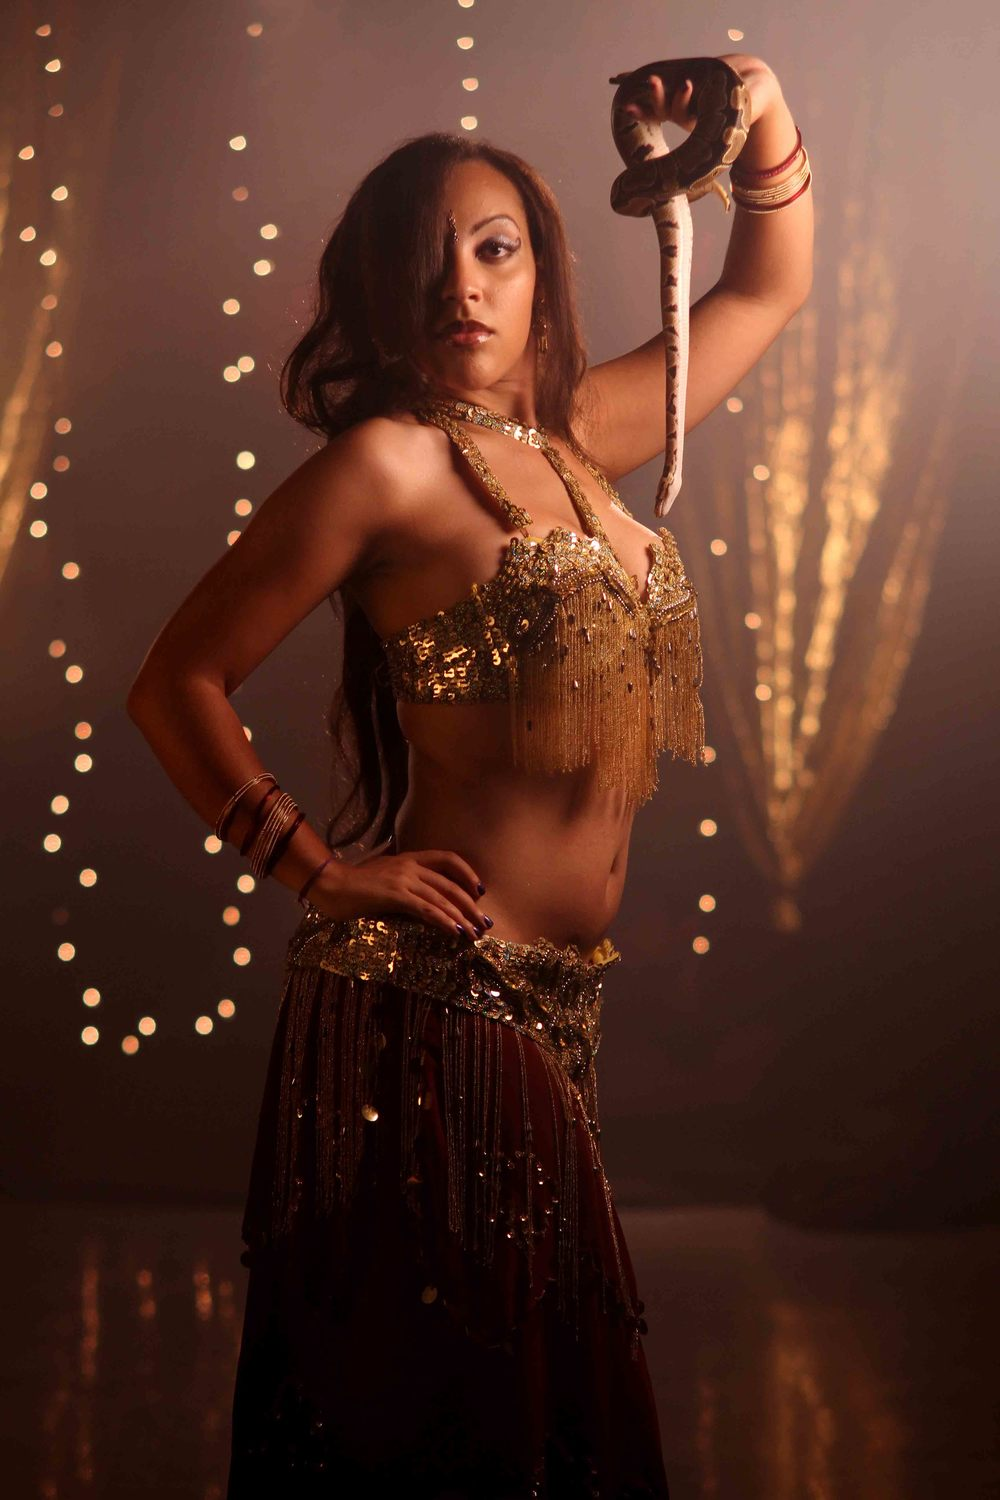 THE REEL OF HORROR - BELLY DANCER.jpg